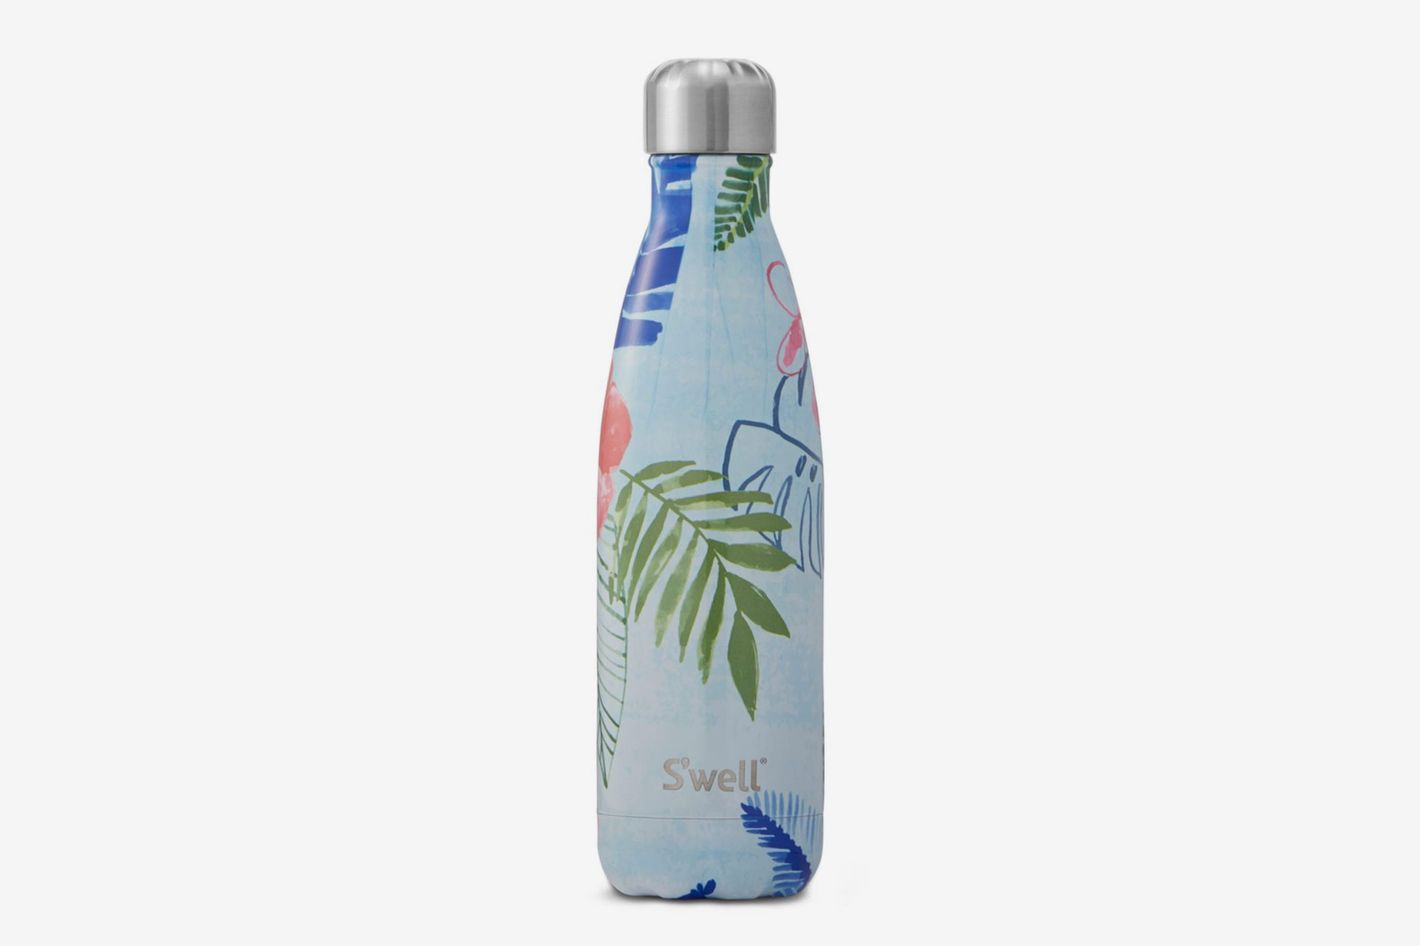 S'well Oahu Stainless Steel Water Bottle/17 oz.